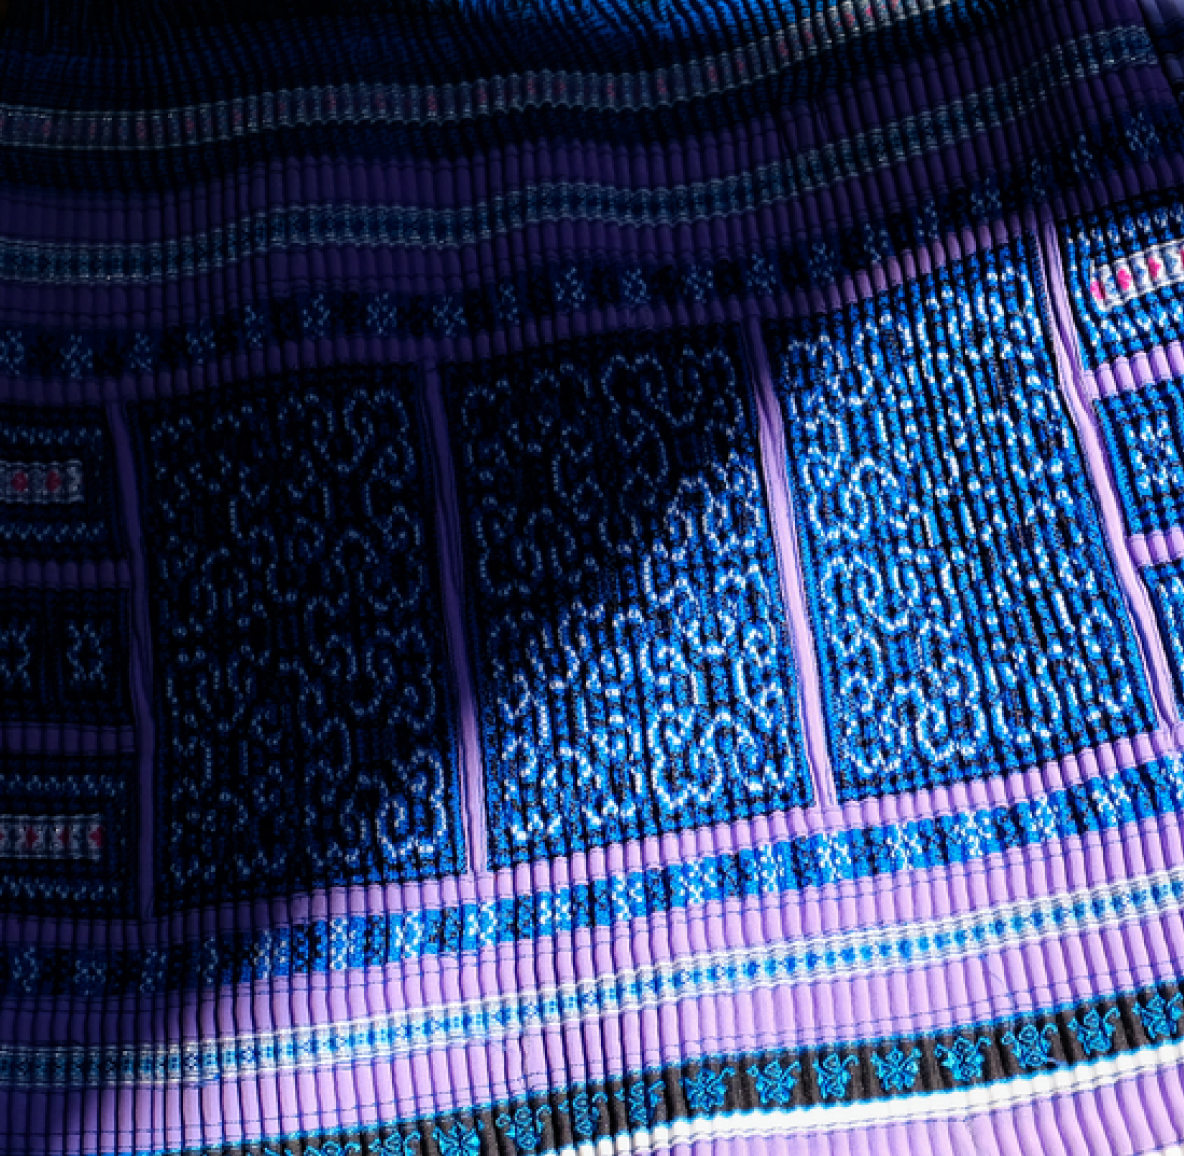 A blue and purple patterned rug